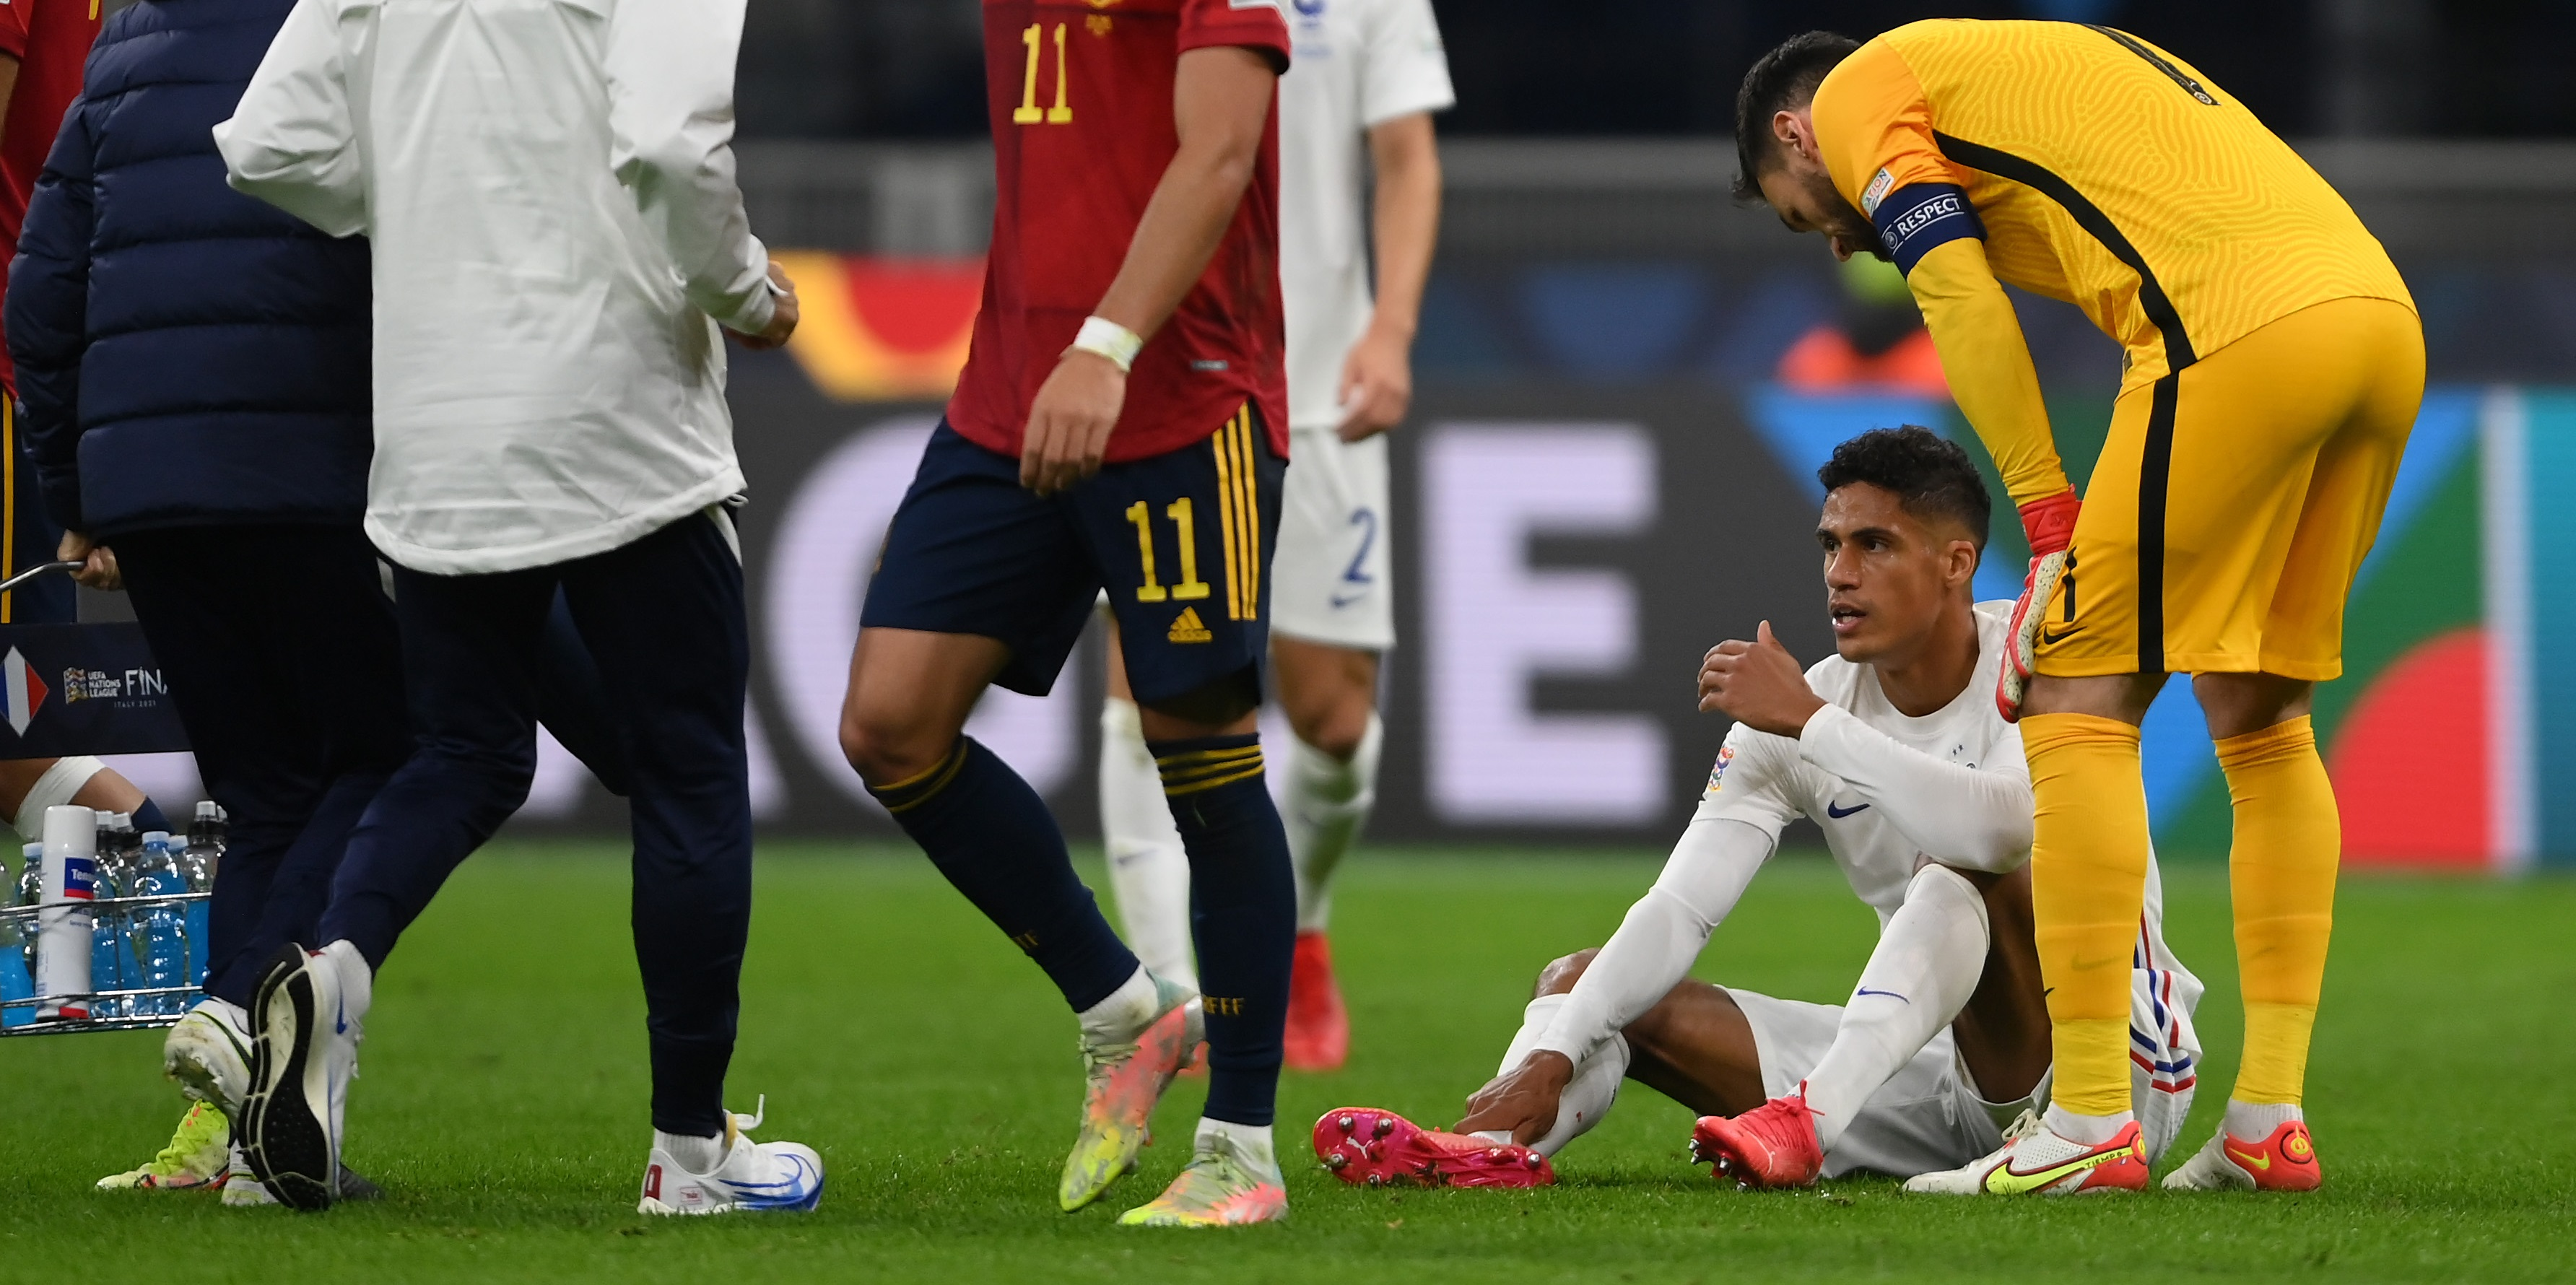 Manchester United could be without key man for Liverpool clash after suffering 'groin muscle injury' on international duty